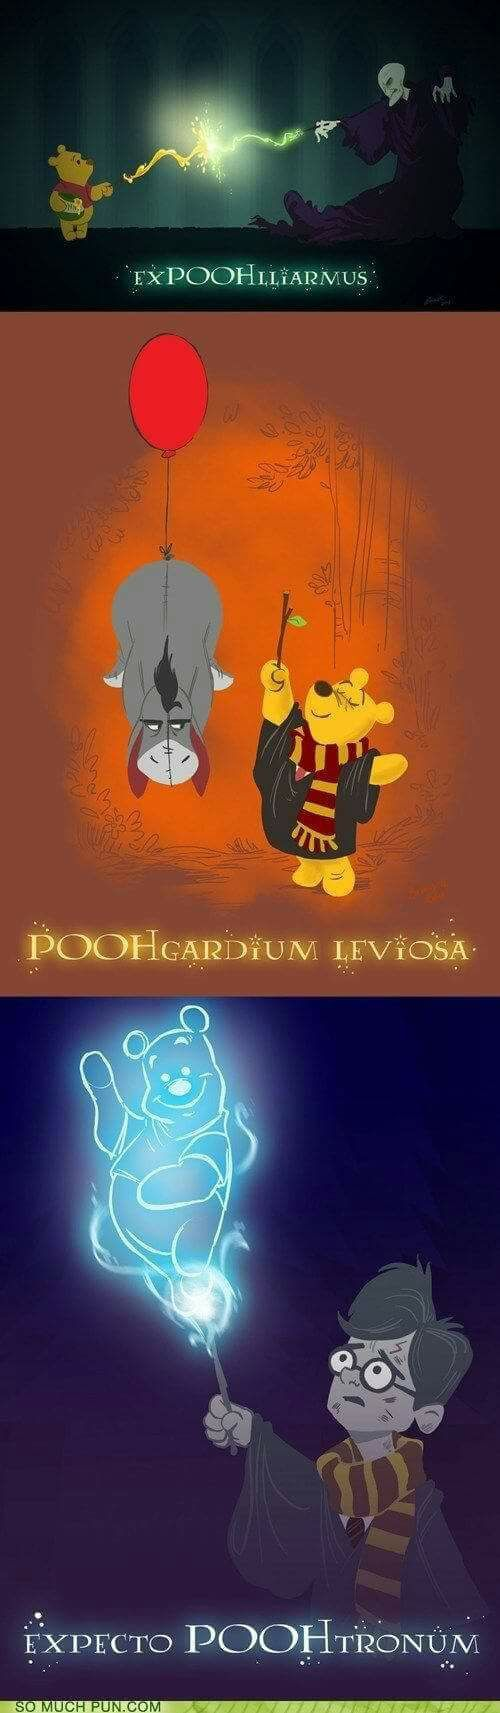 Harry Potter Just want to say that this post is my ENTIRE life like Disney and hp are my everything!!